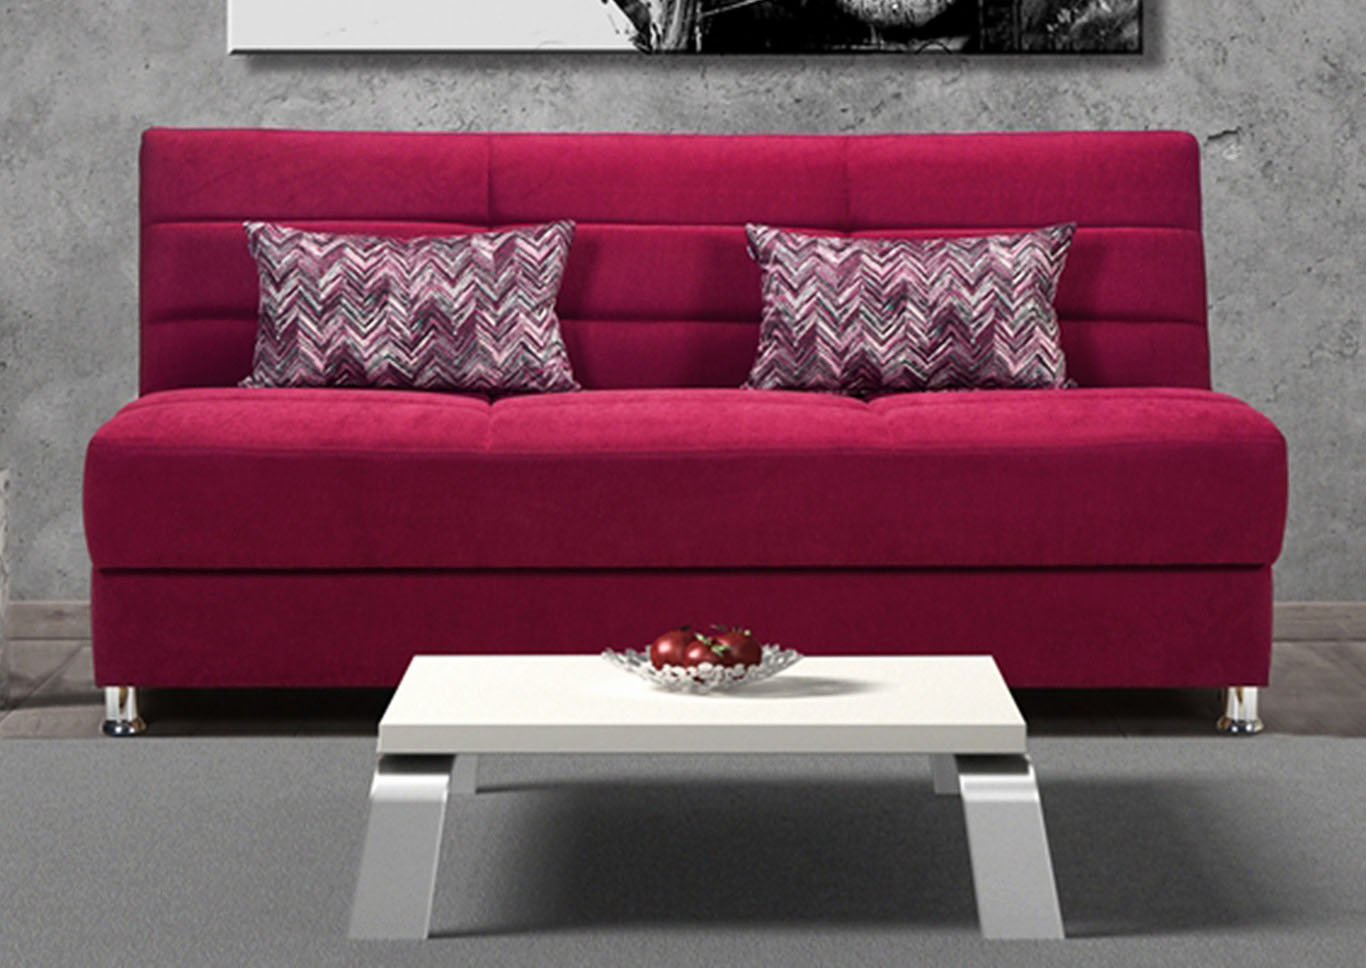 Rainbow Burgundy Chenille Sofabed,CasaMode Functional Furniture